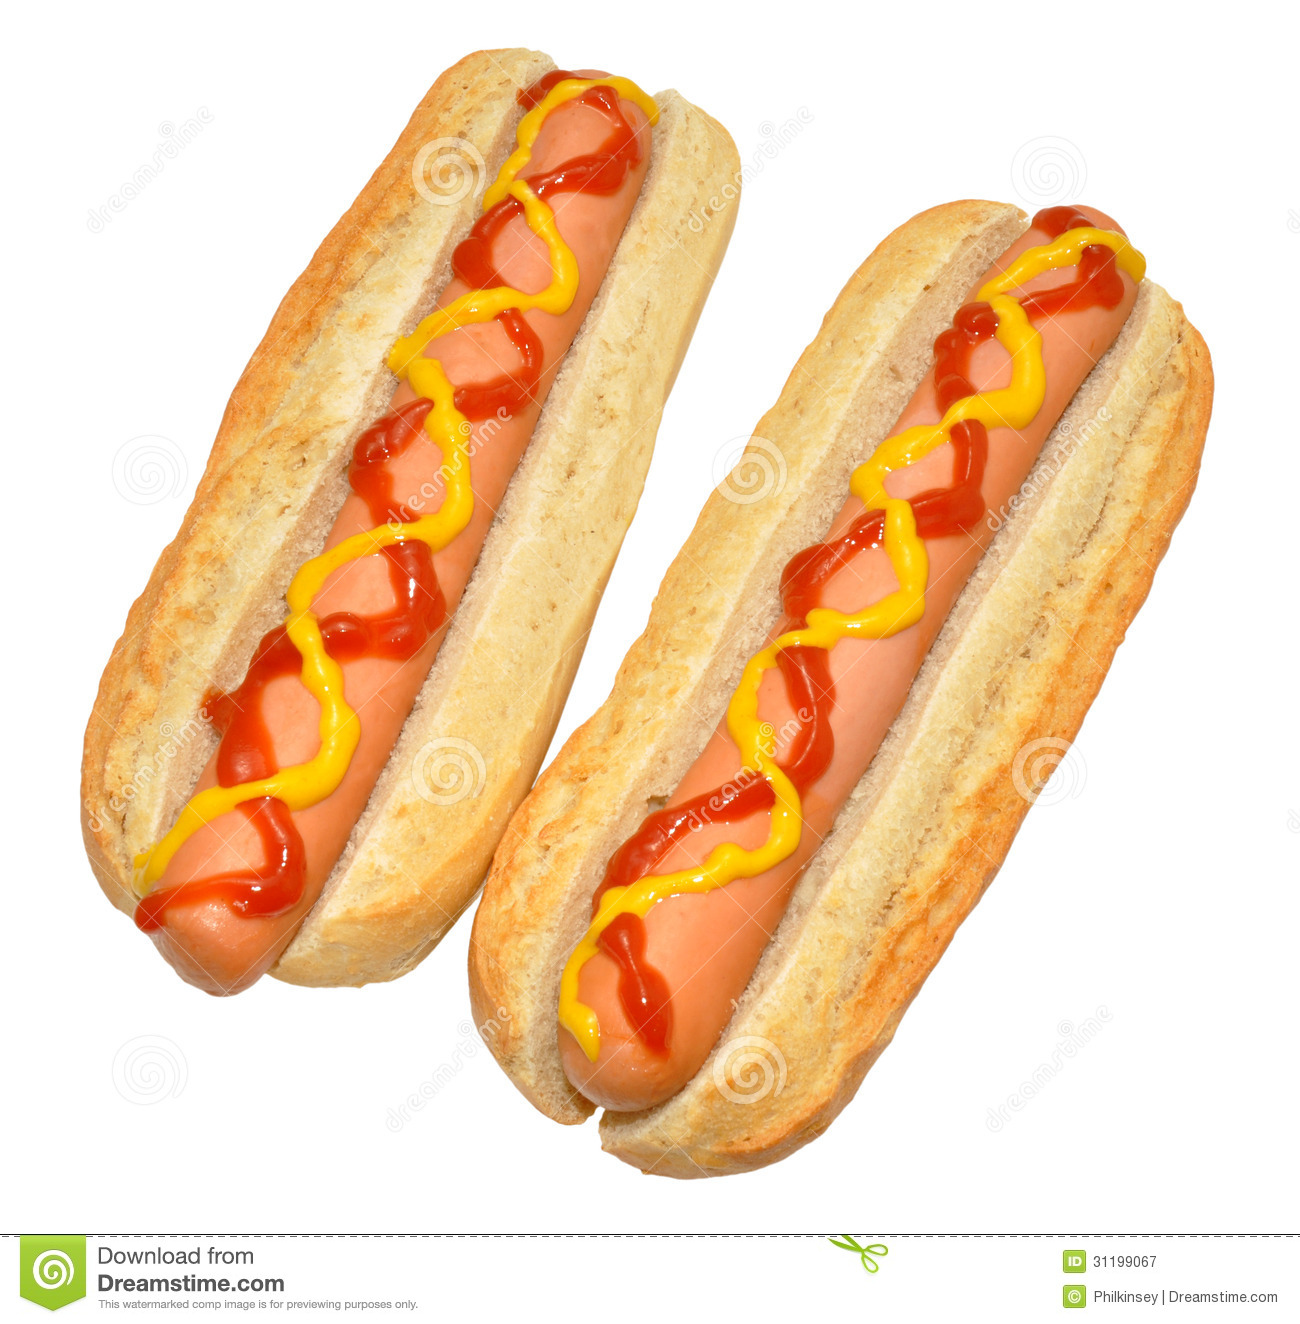 Hot Dogs Movie free download HD 720p